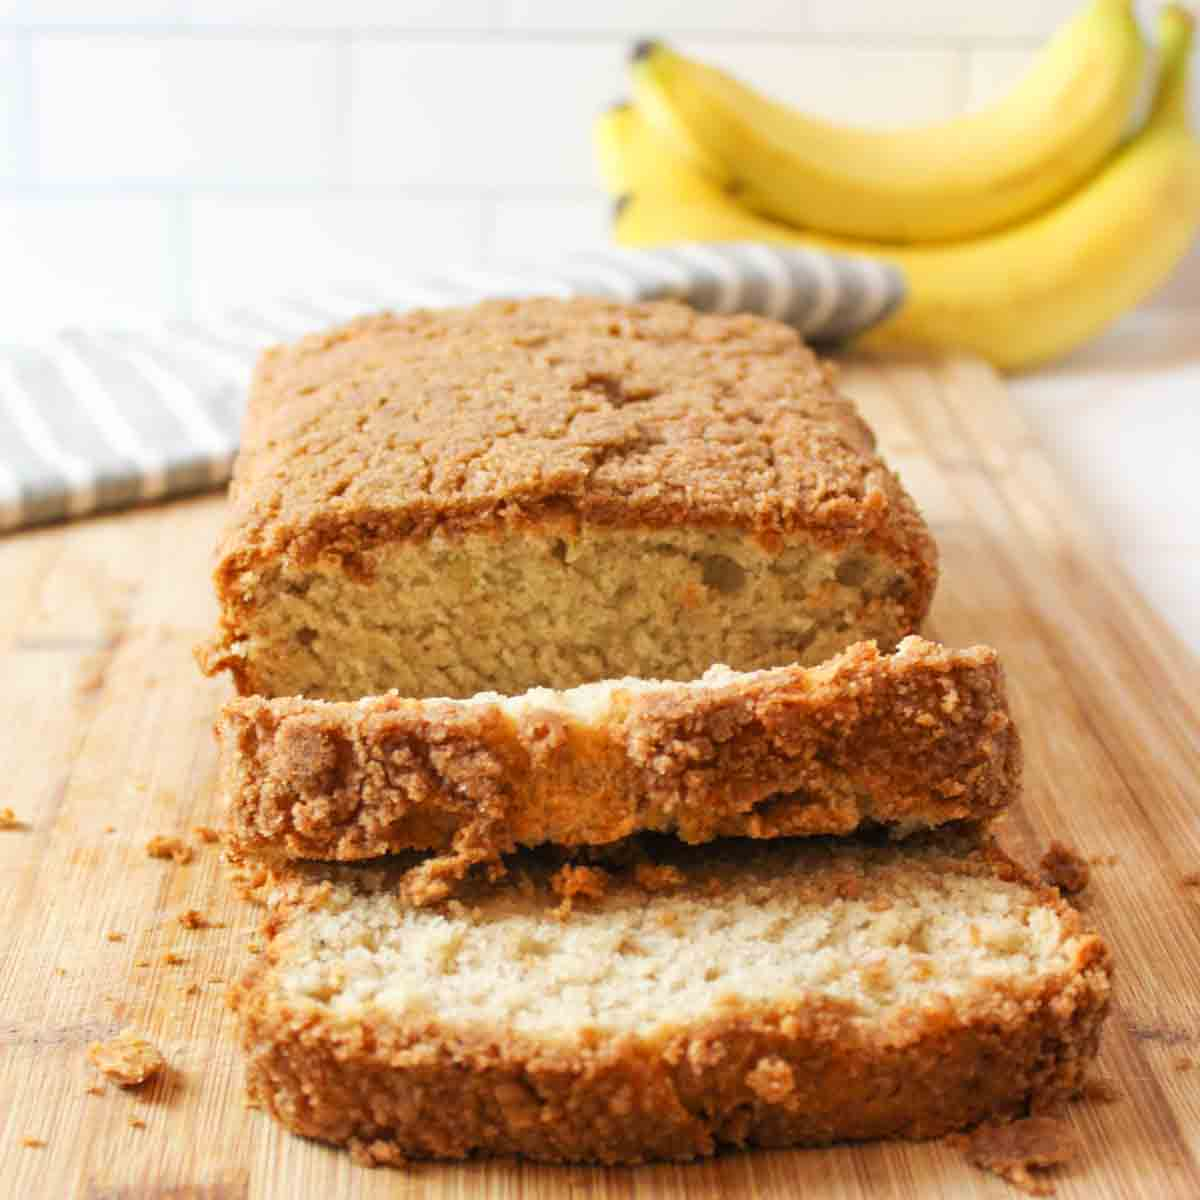 a close view of sliced banana bread on a cutting board with ripe bananas in background